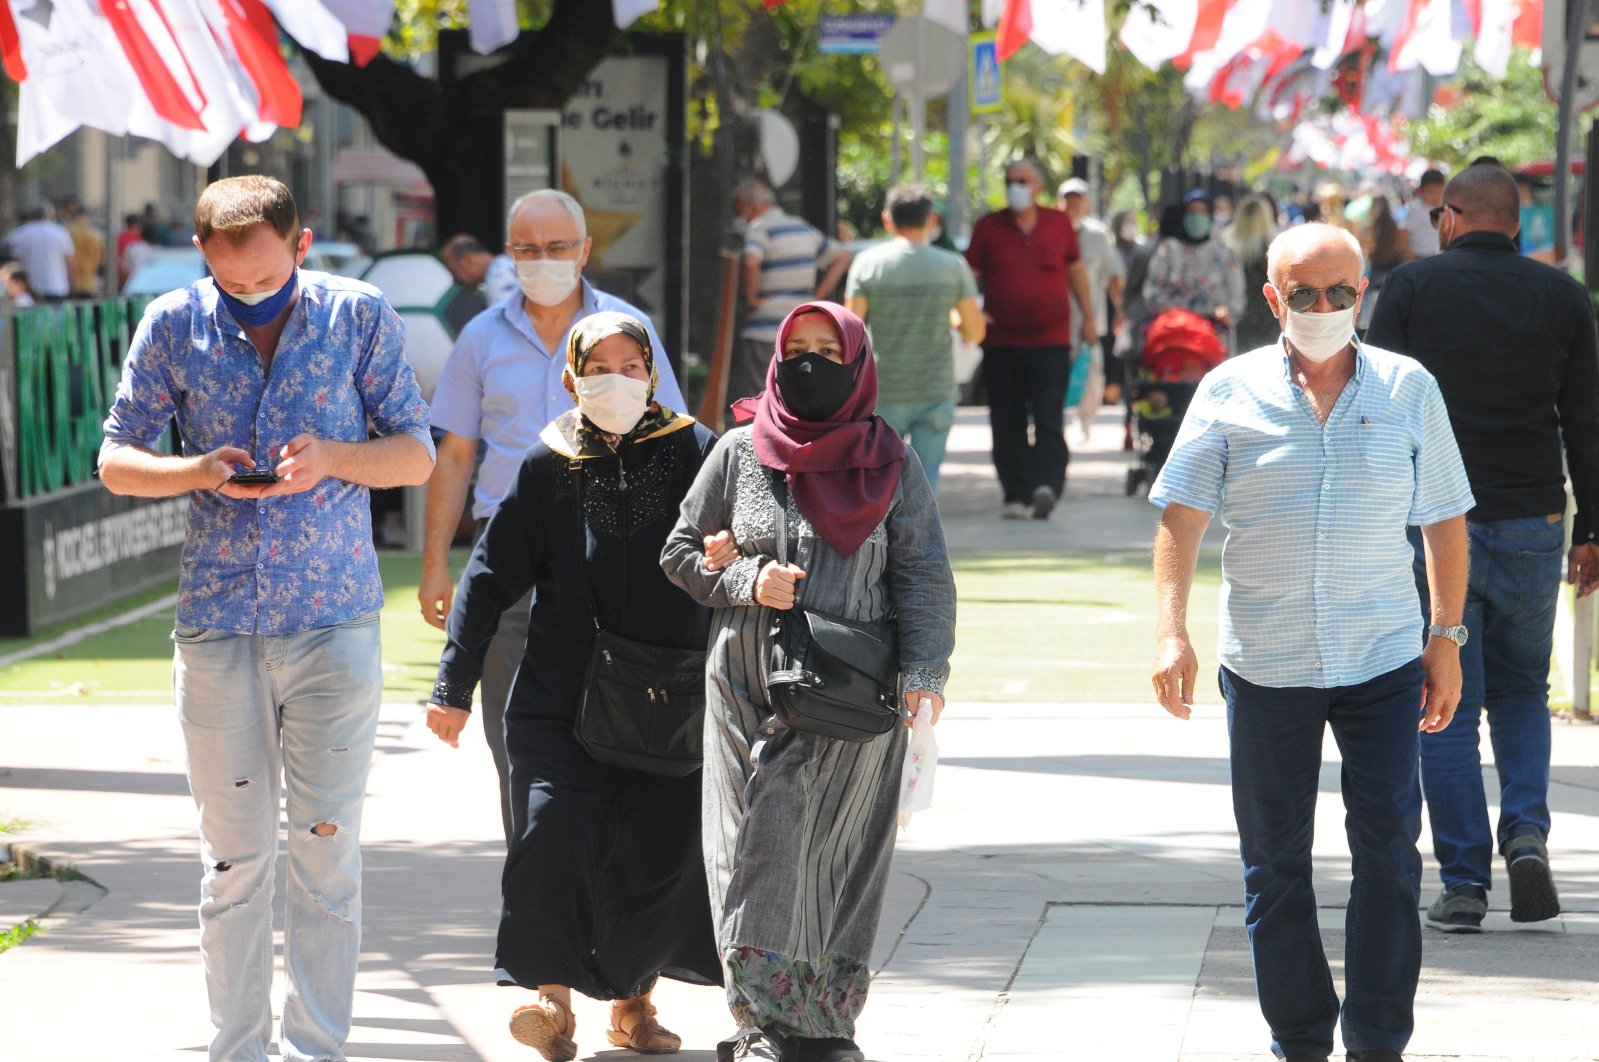 People wearing protective masks walk on a street in Kocaeli, northwestern Turkey, Aug. 26, 2020. (DHA Photo)